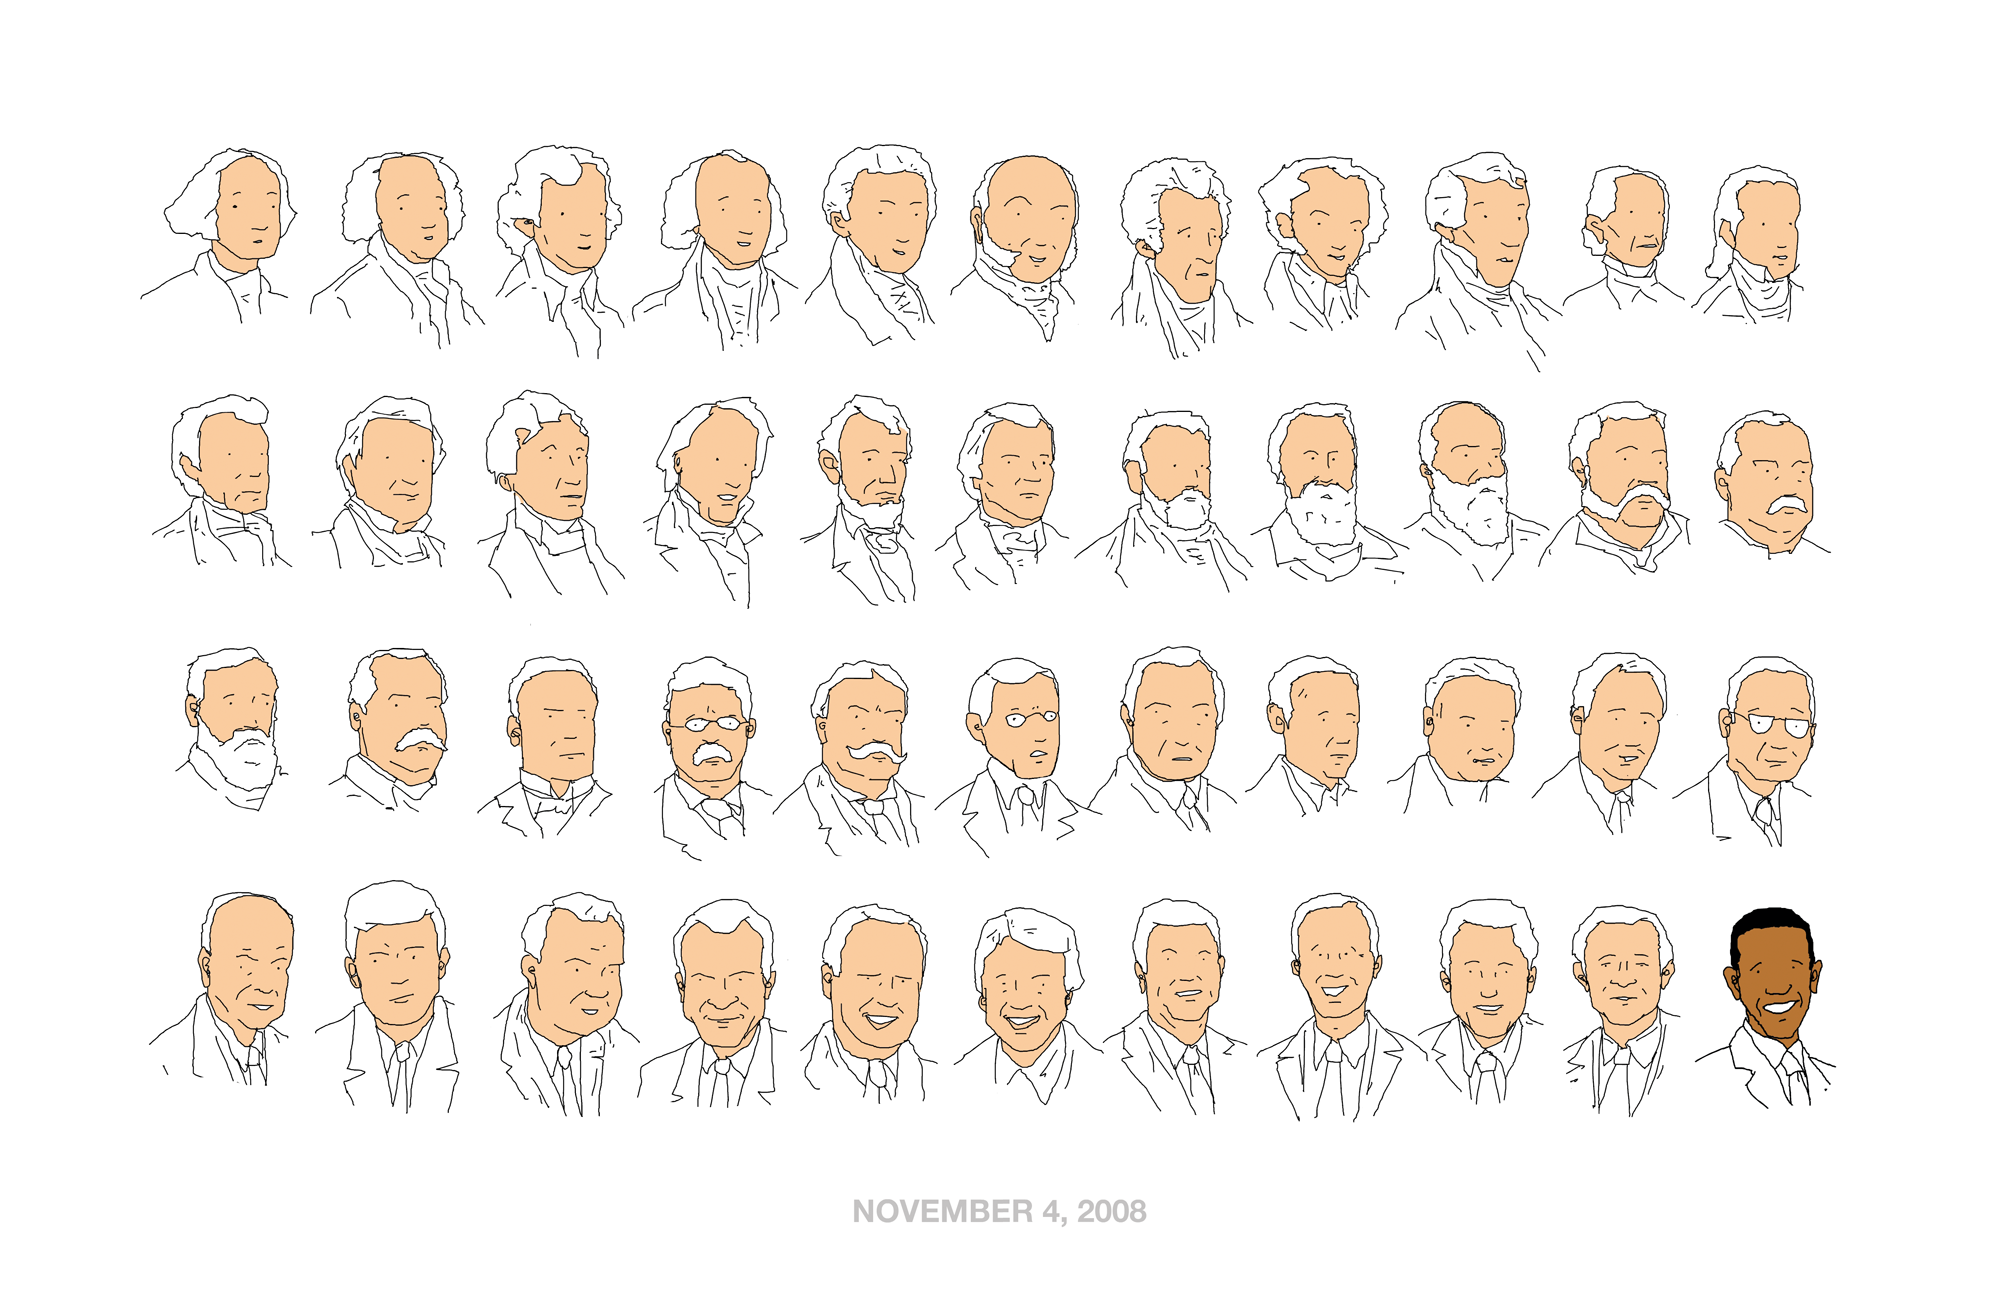 Illustration of the first 44 Presidents of the United States laid out in a grid.